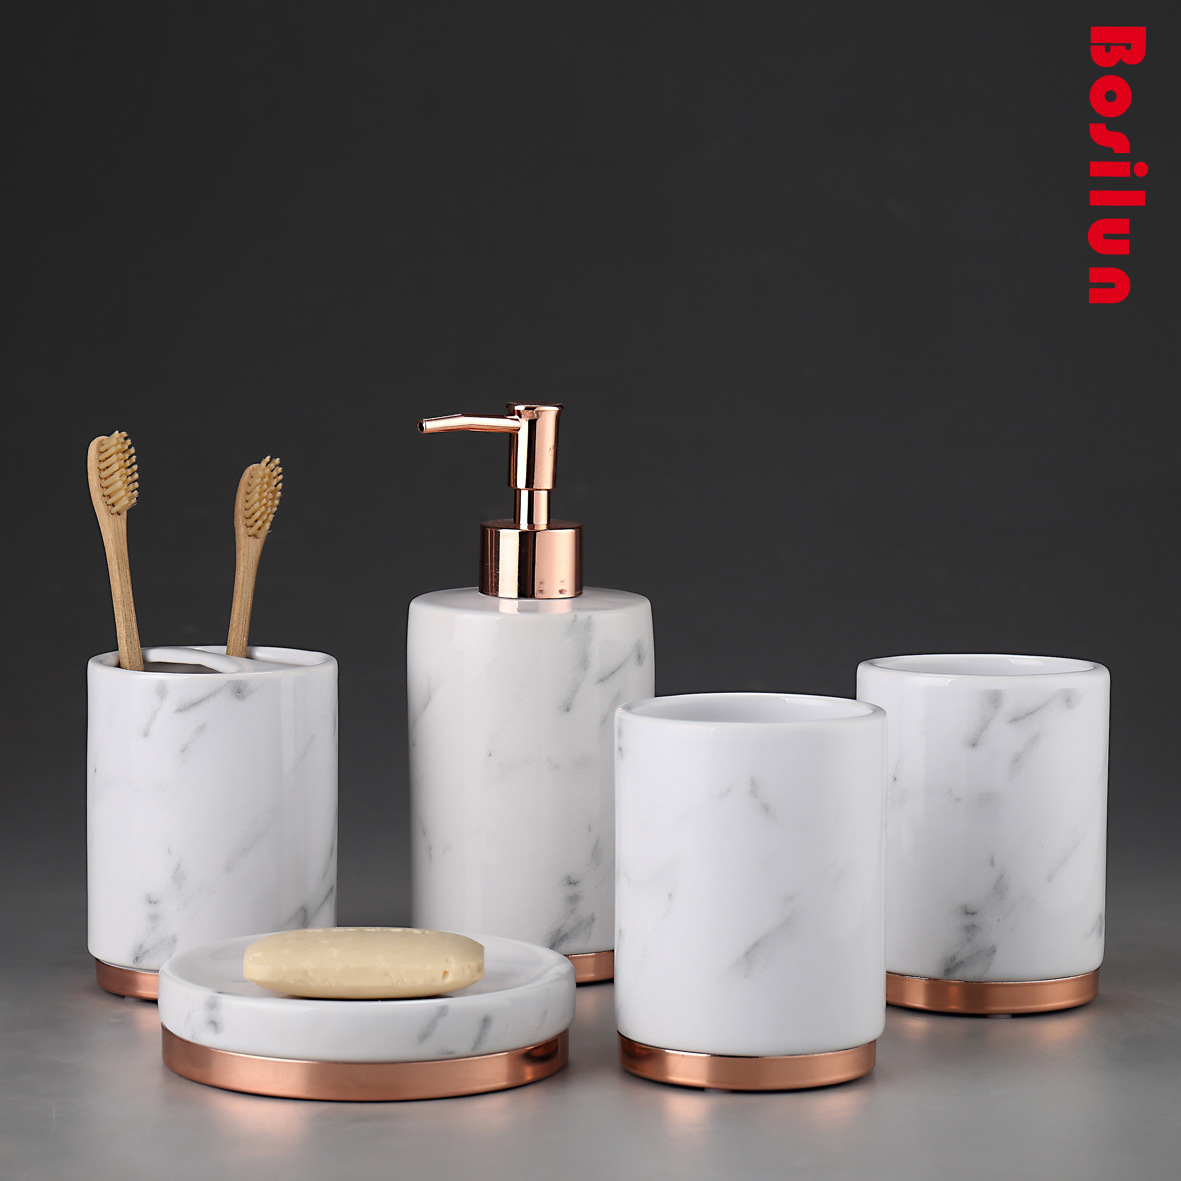 Bathroom Accessories White Ceramics Sets Soap Dispenser Shower Cup Holder Toothbrush Holder 5pcs Ceramic Bathroom Set original xiaomi mijia hl bathroom 5 in1 sets for soap tooth hook storage box and phone holder for bathroom shower room tool